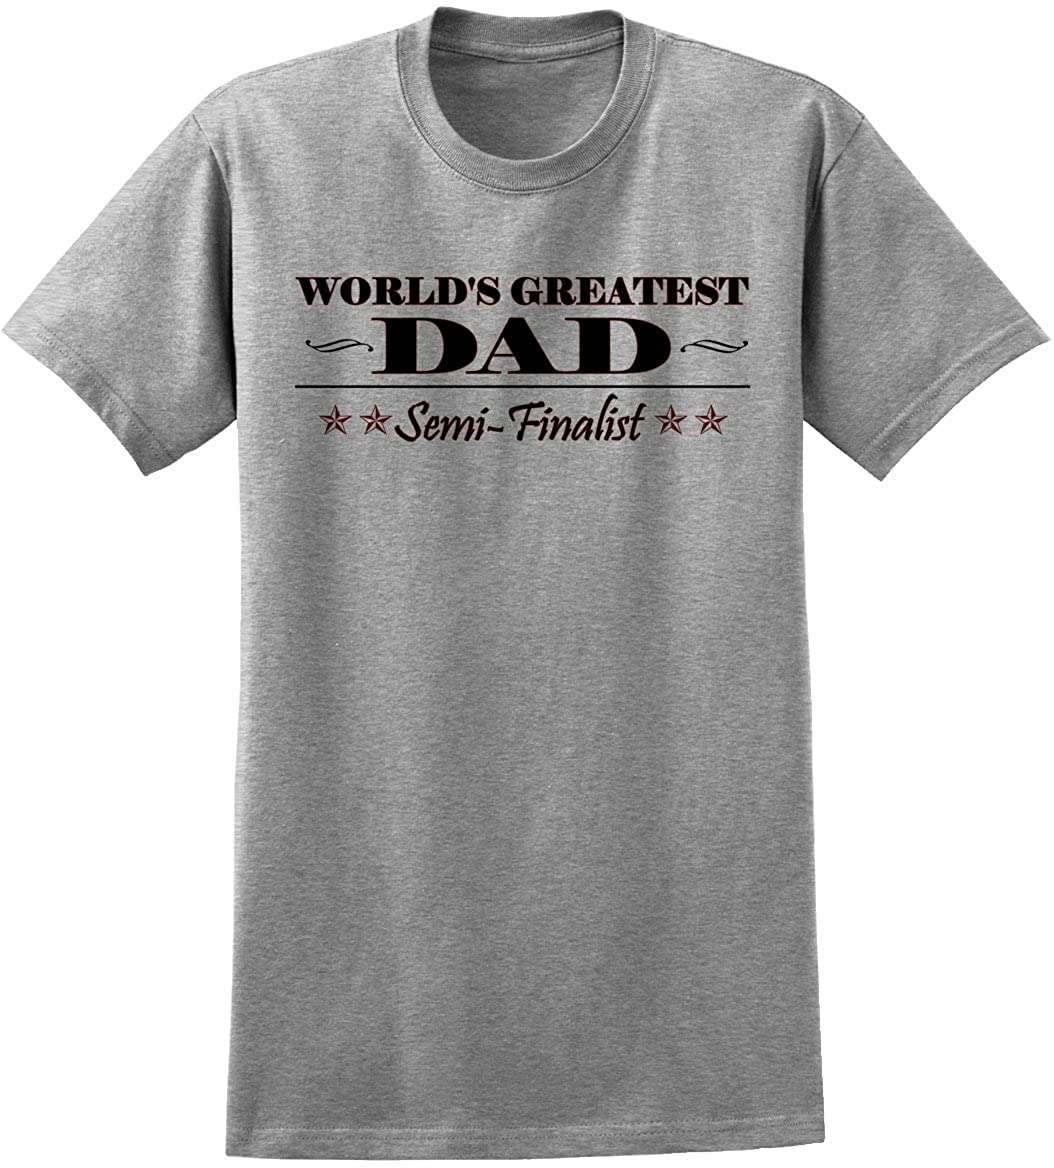 Amazon.com: World's Greatest Dad Semi-finalist funny Novelty T ...